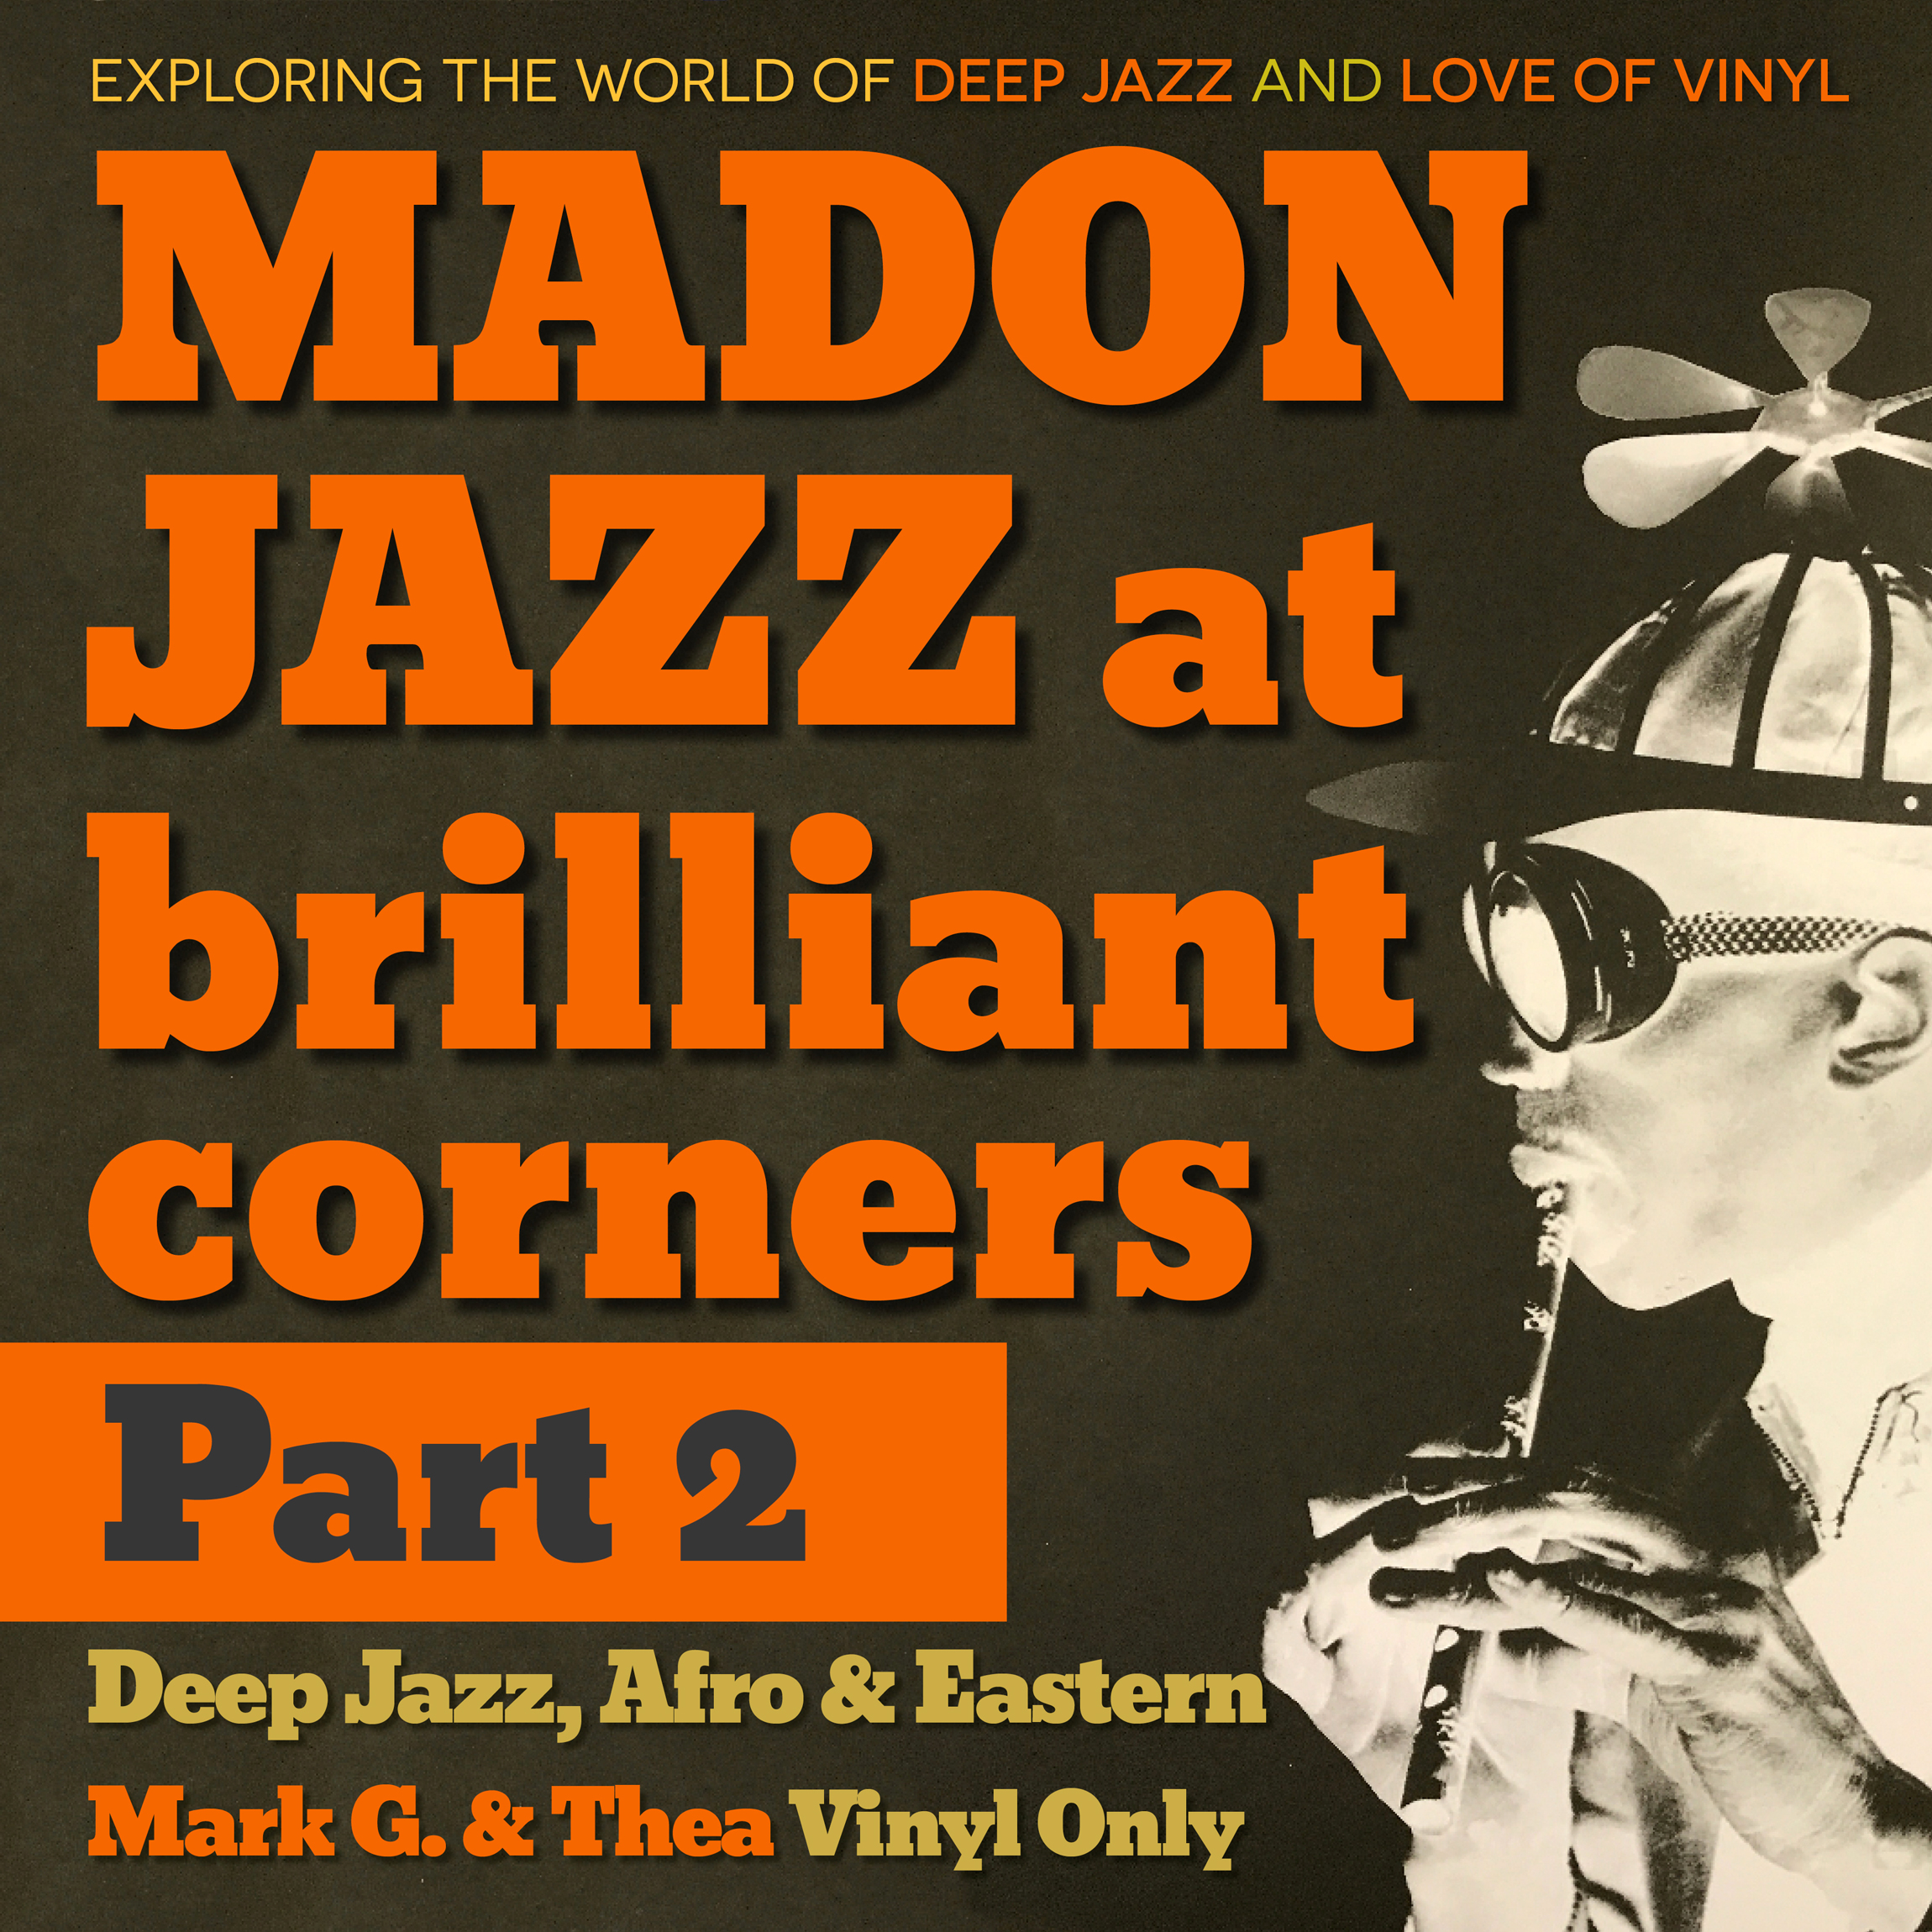 MADONJAZZ at Brilliant Corners, May 2017 – Pt 2